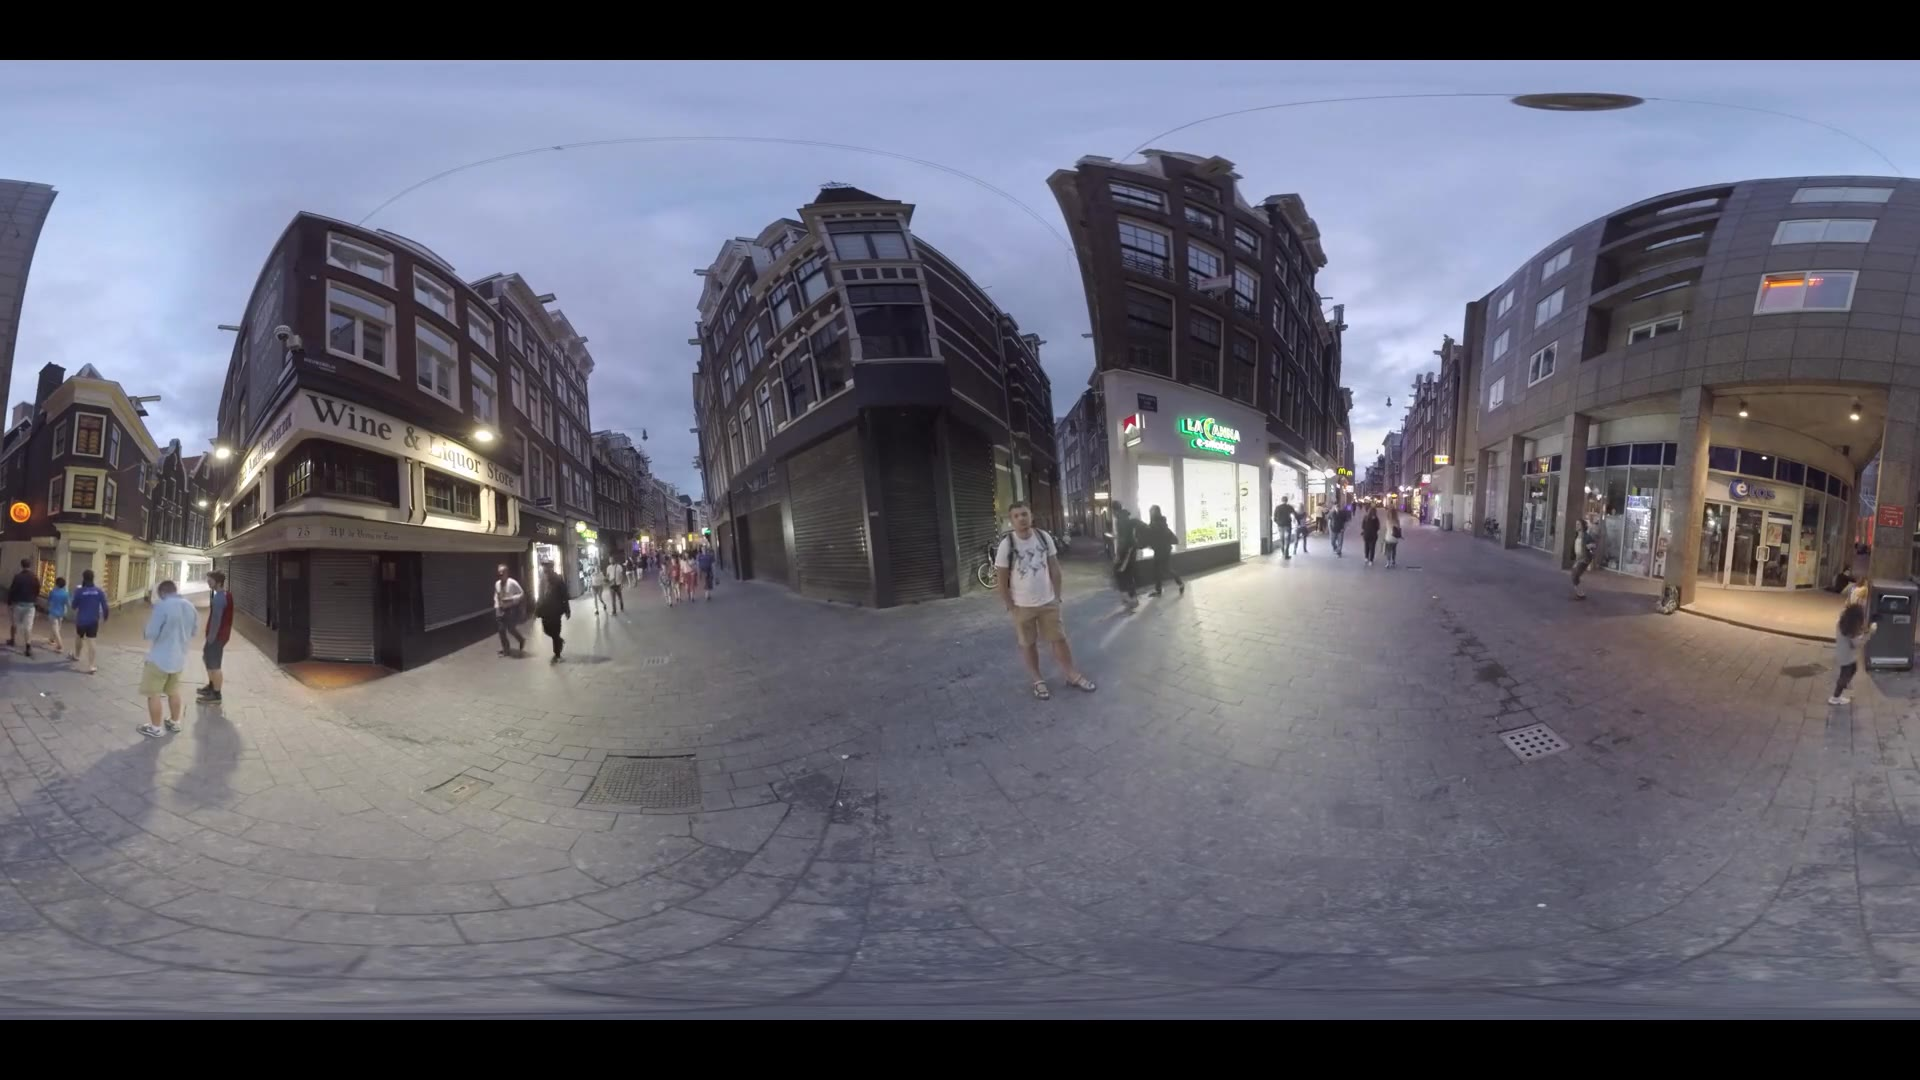 AMSTERDAM, NETHERLANDS - AUGUST 09, 2016: 360 VR video. Evening view to the alleys between houses and people walking among illuminated stores and banners